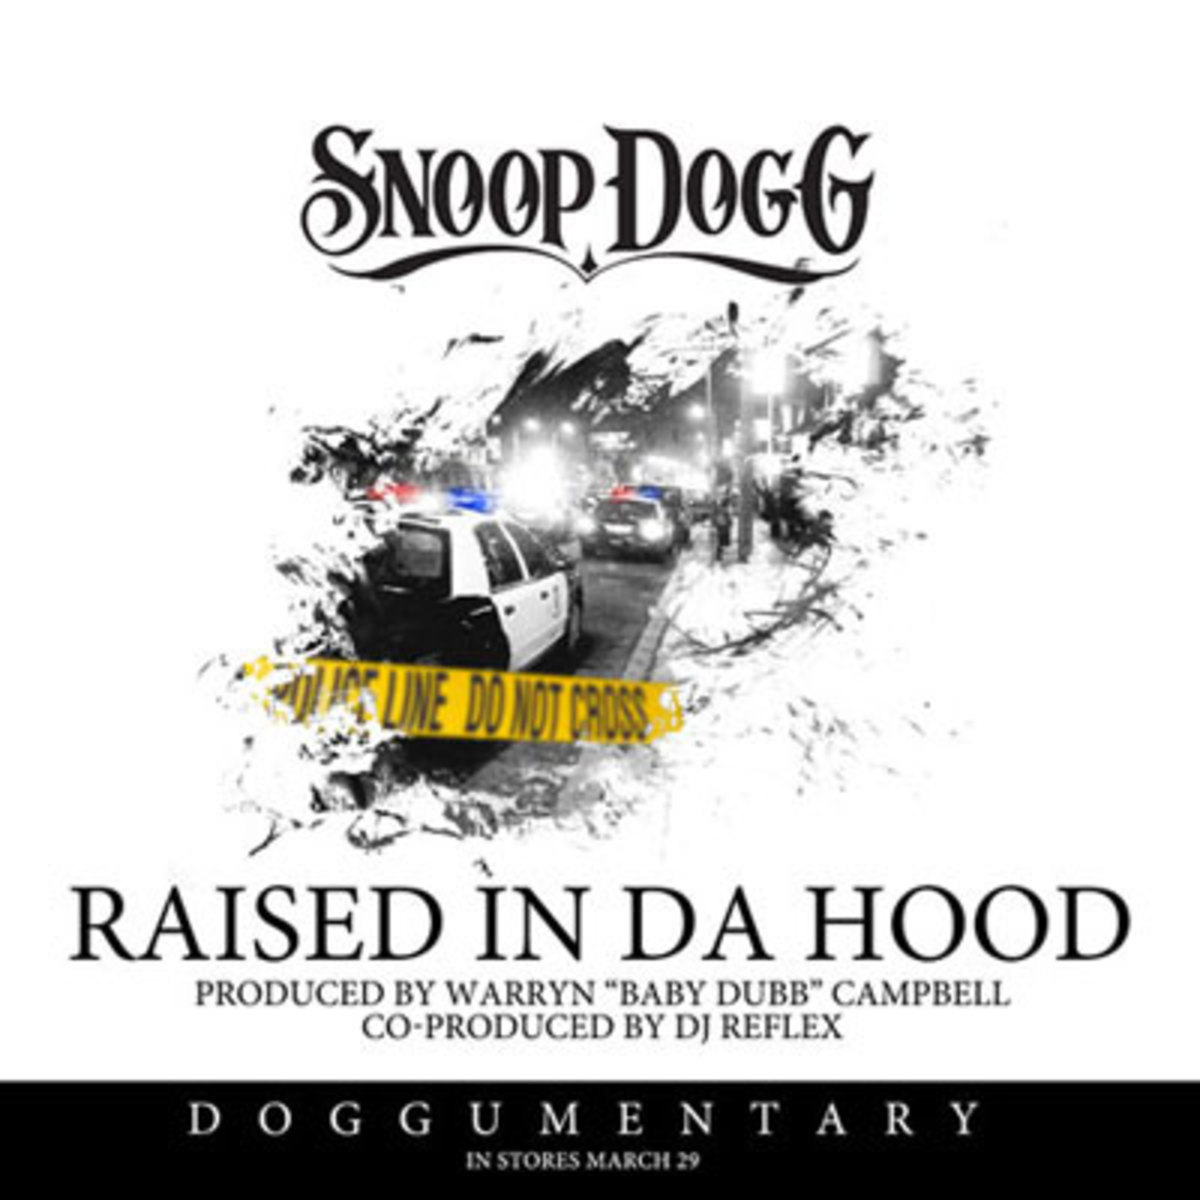 snoopdogg-raisedinthehood.jpg